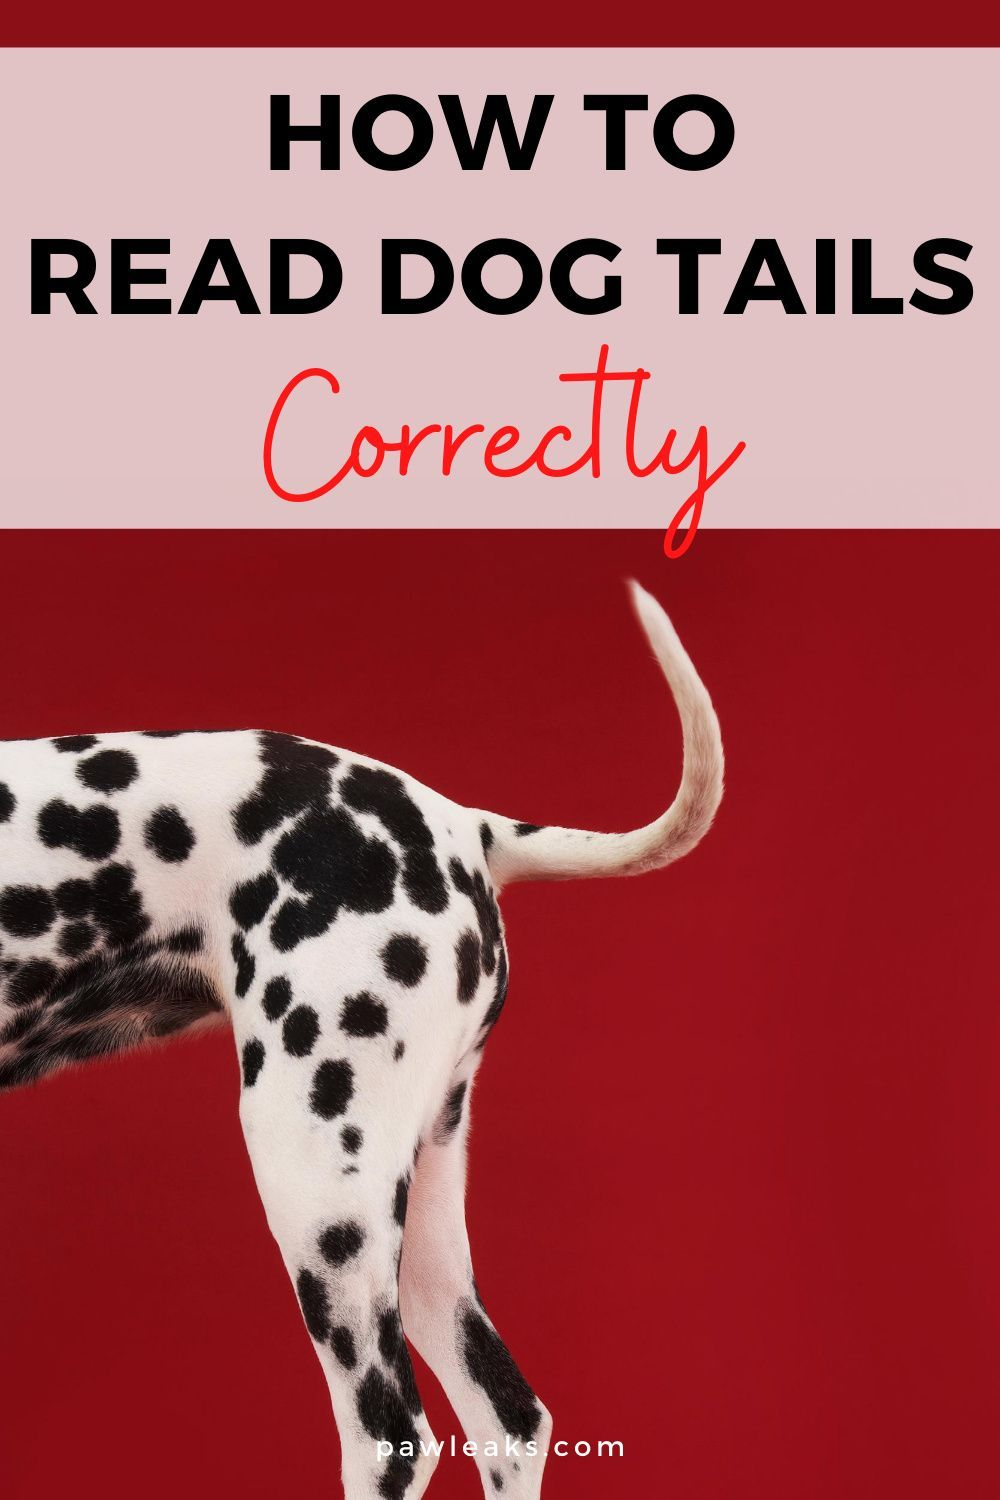 Dog Tail Down Or Up And Stiff Dog Tail Meaning Explained Dog Tail Dog Tail Meaning Dog Posture Meaning